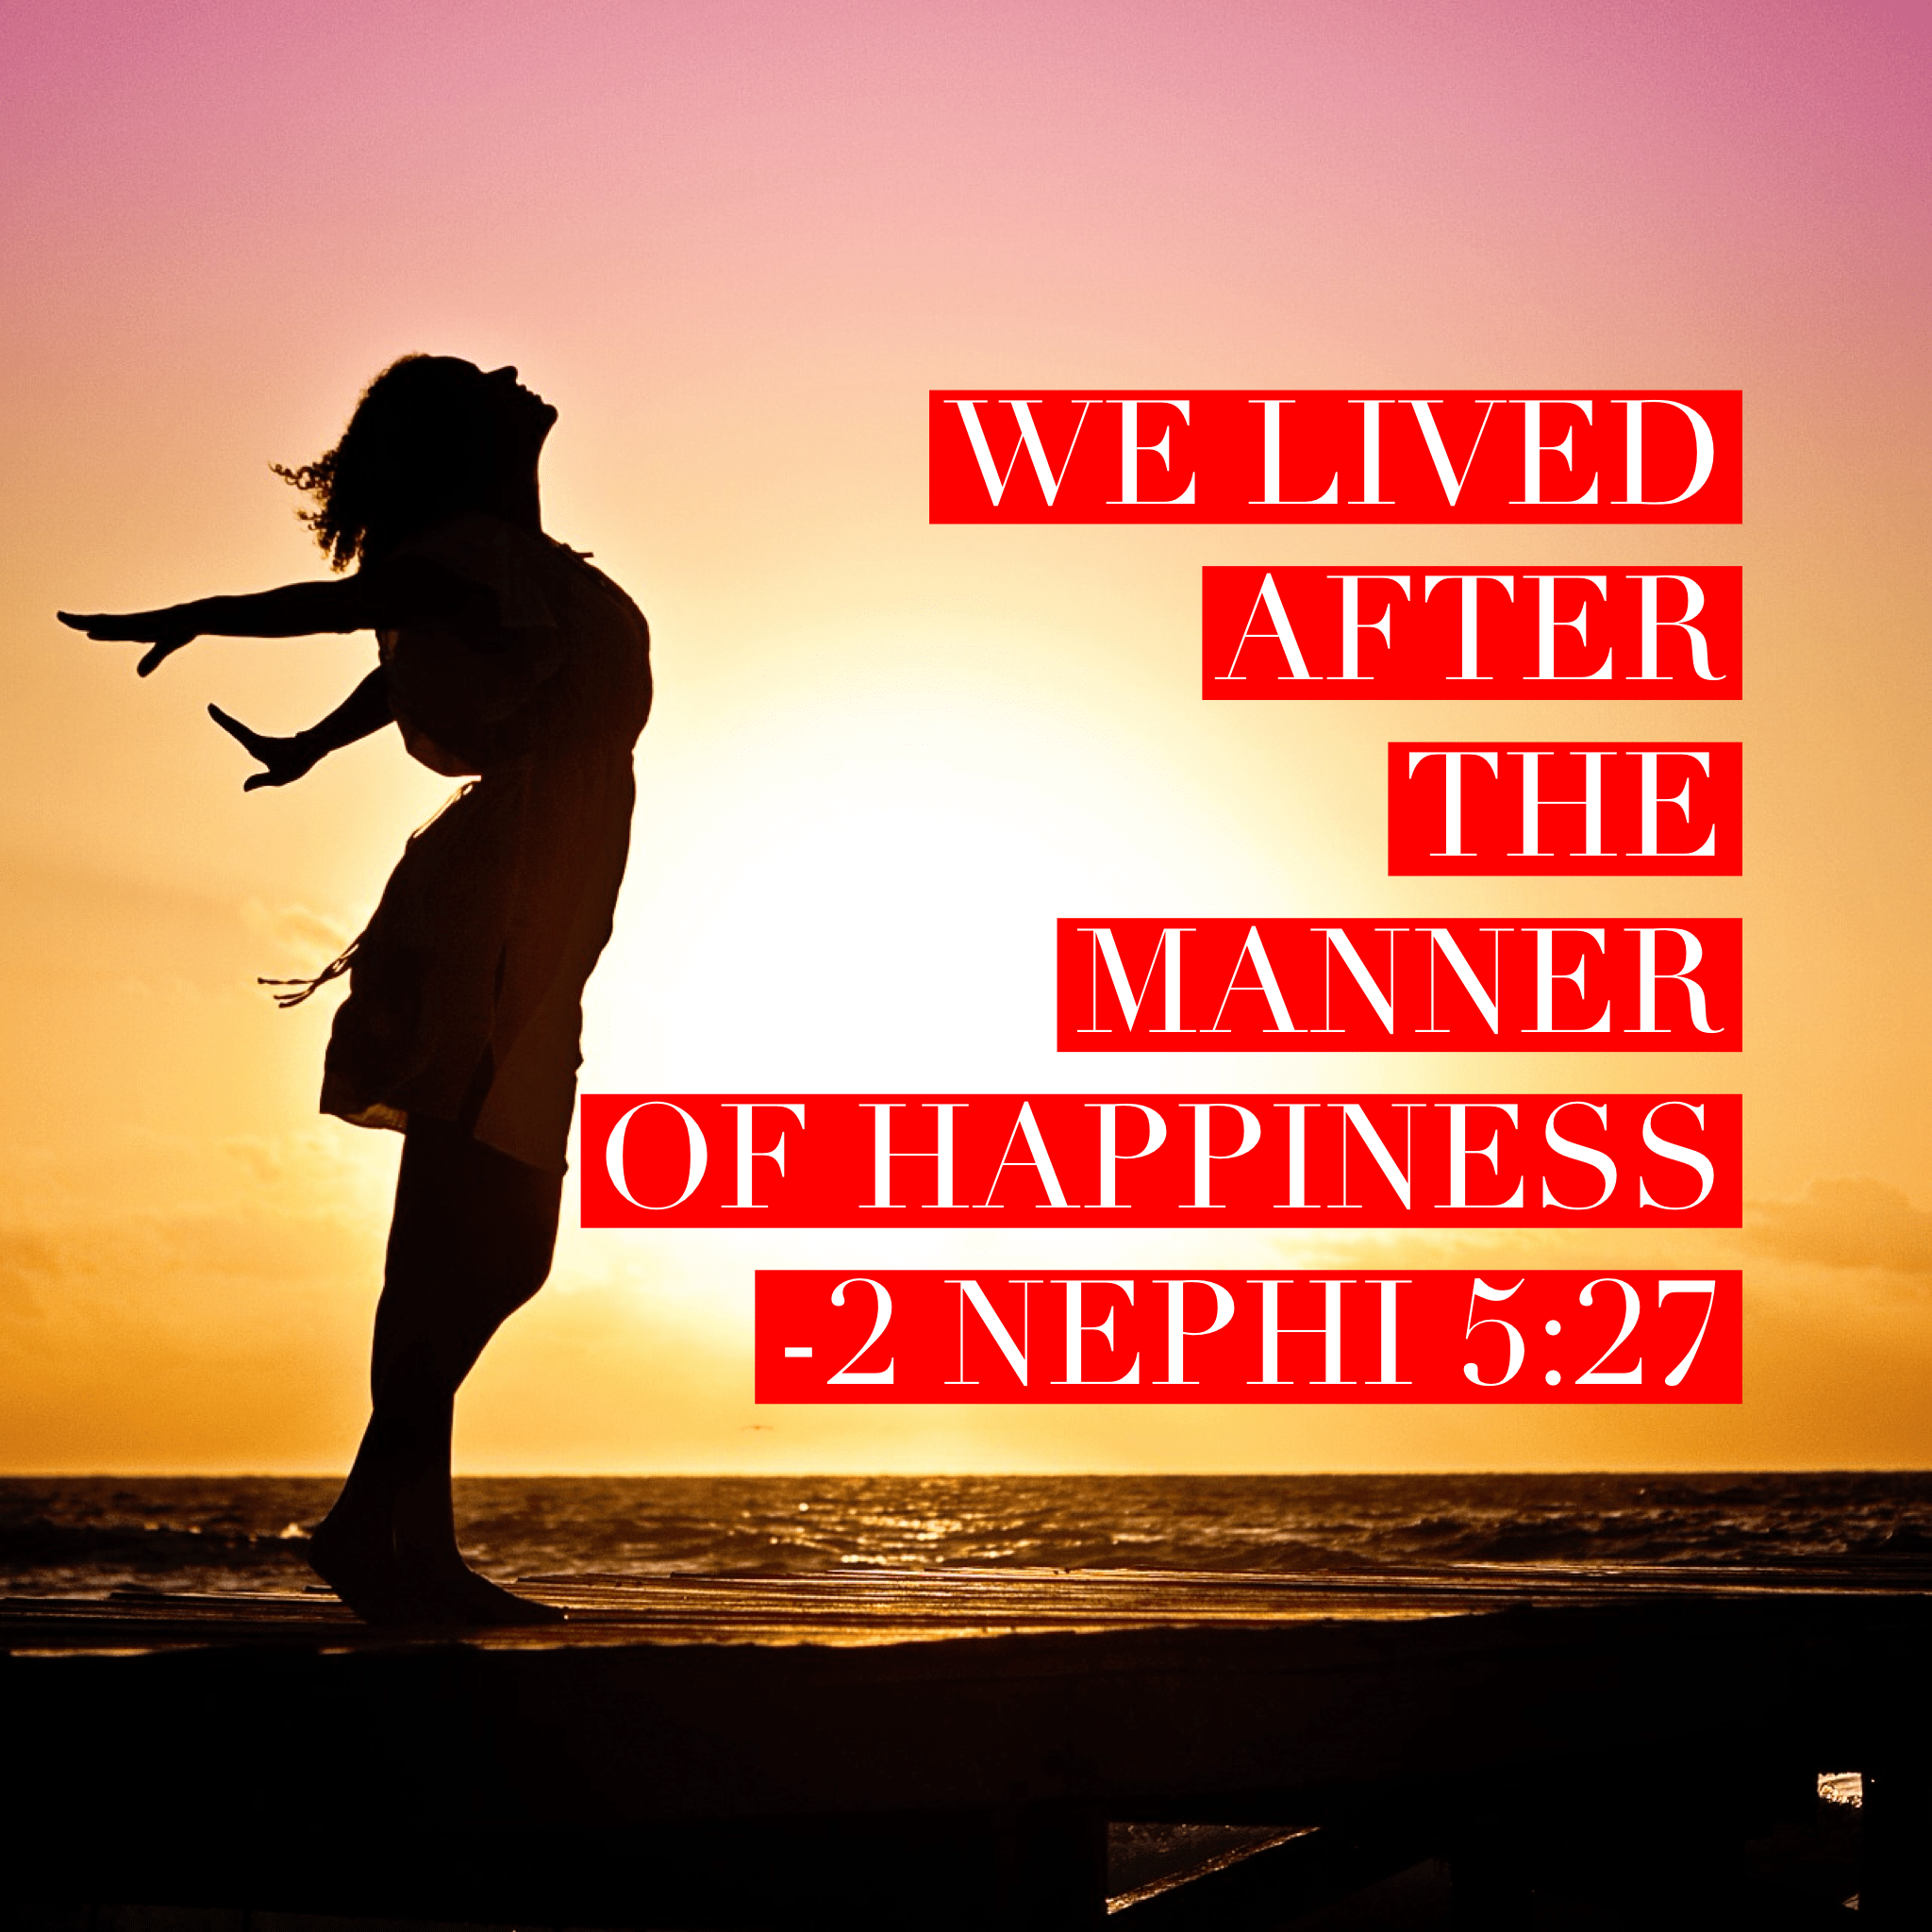 And it came to pass that we lived after the manner of happiness. 2 Nephi 5:27